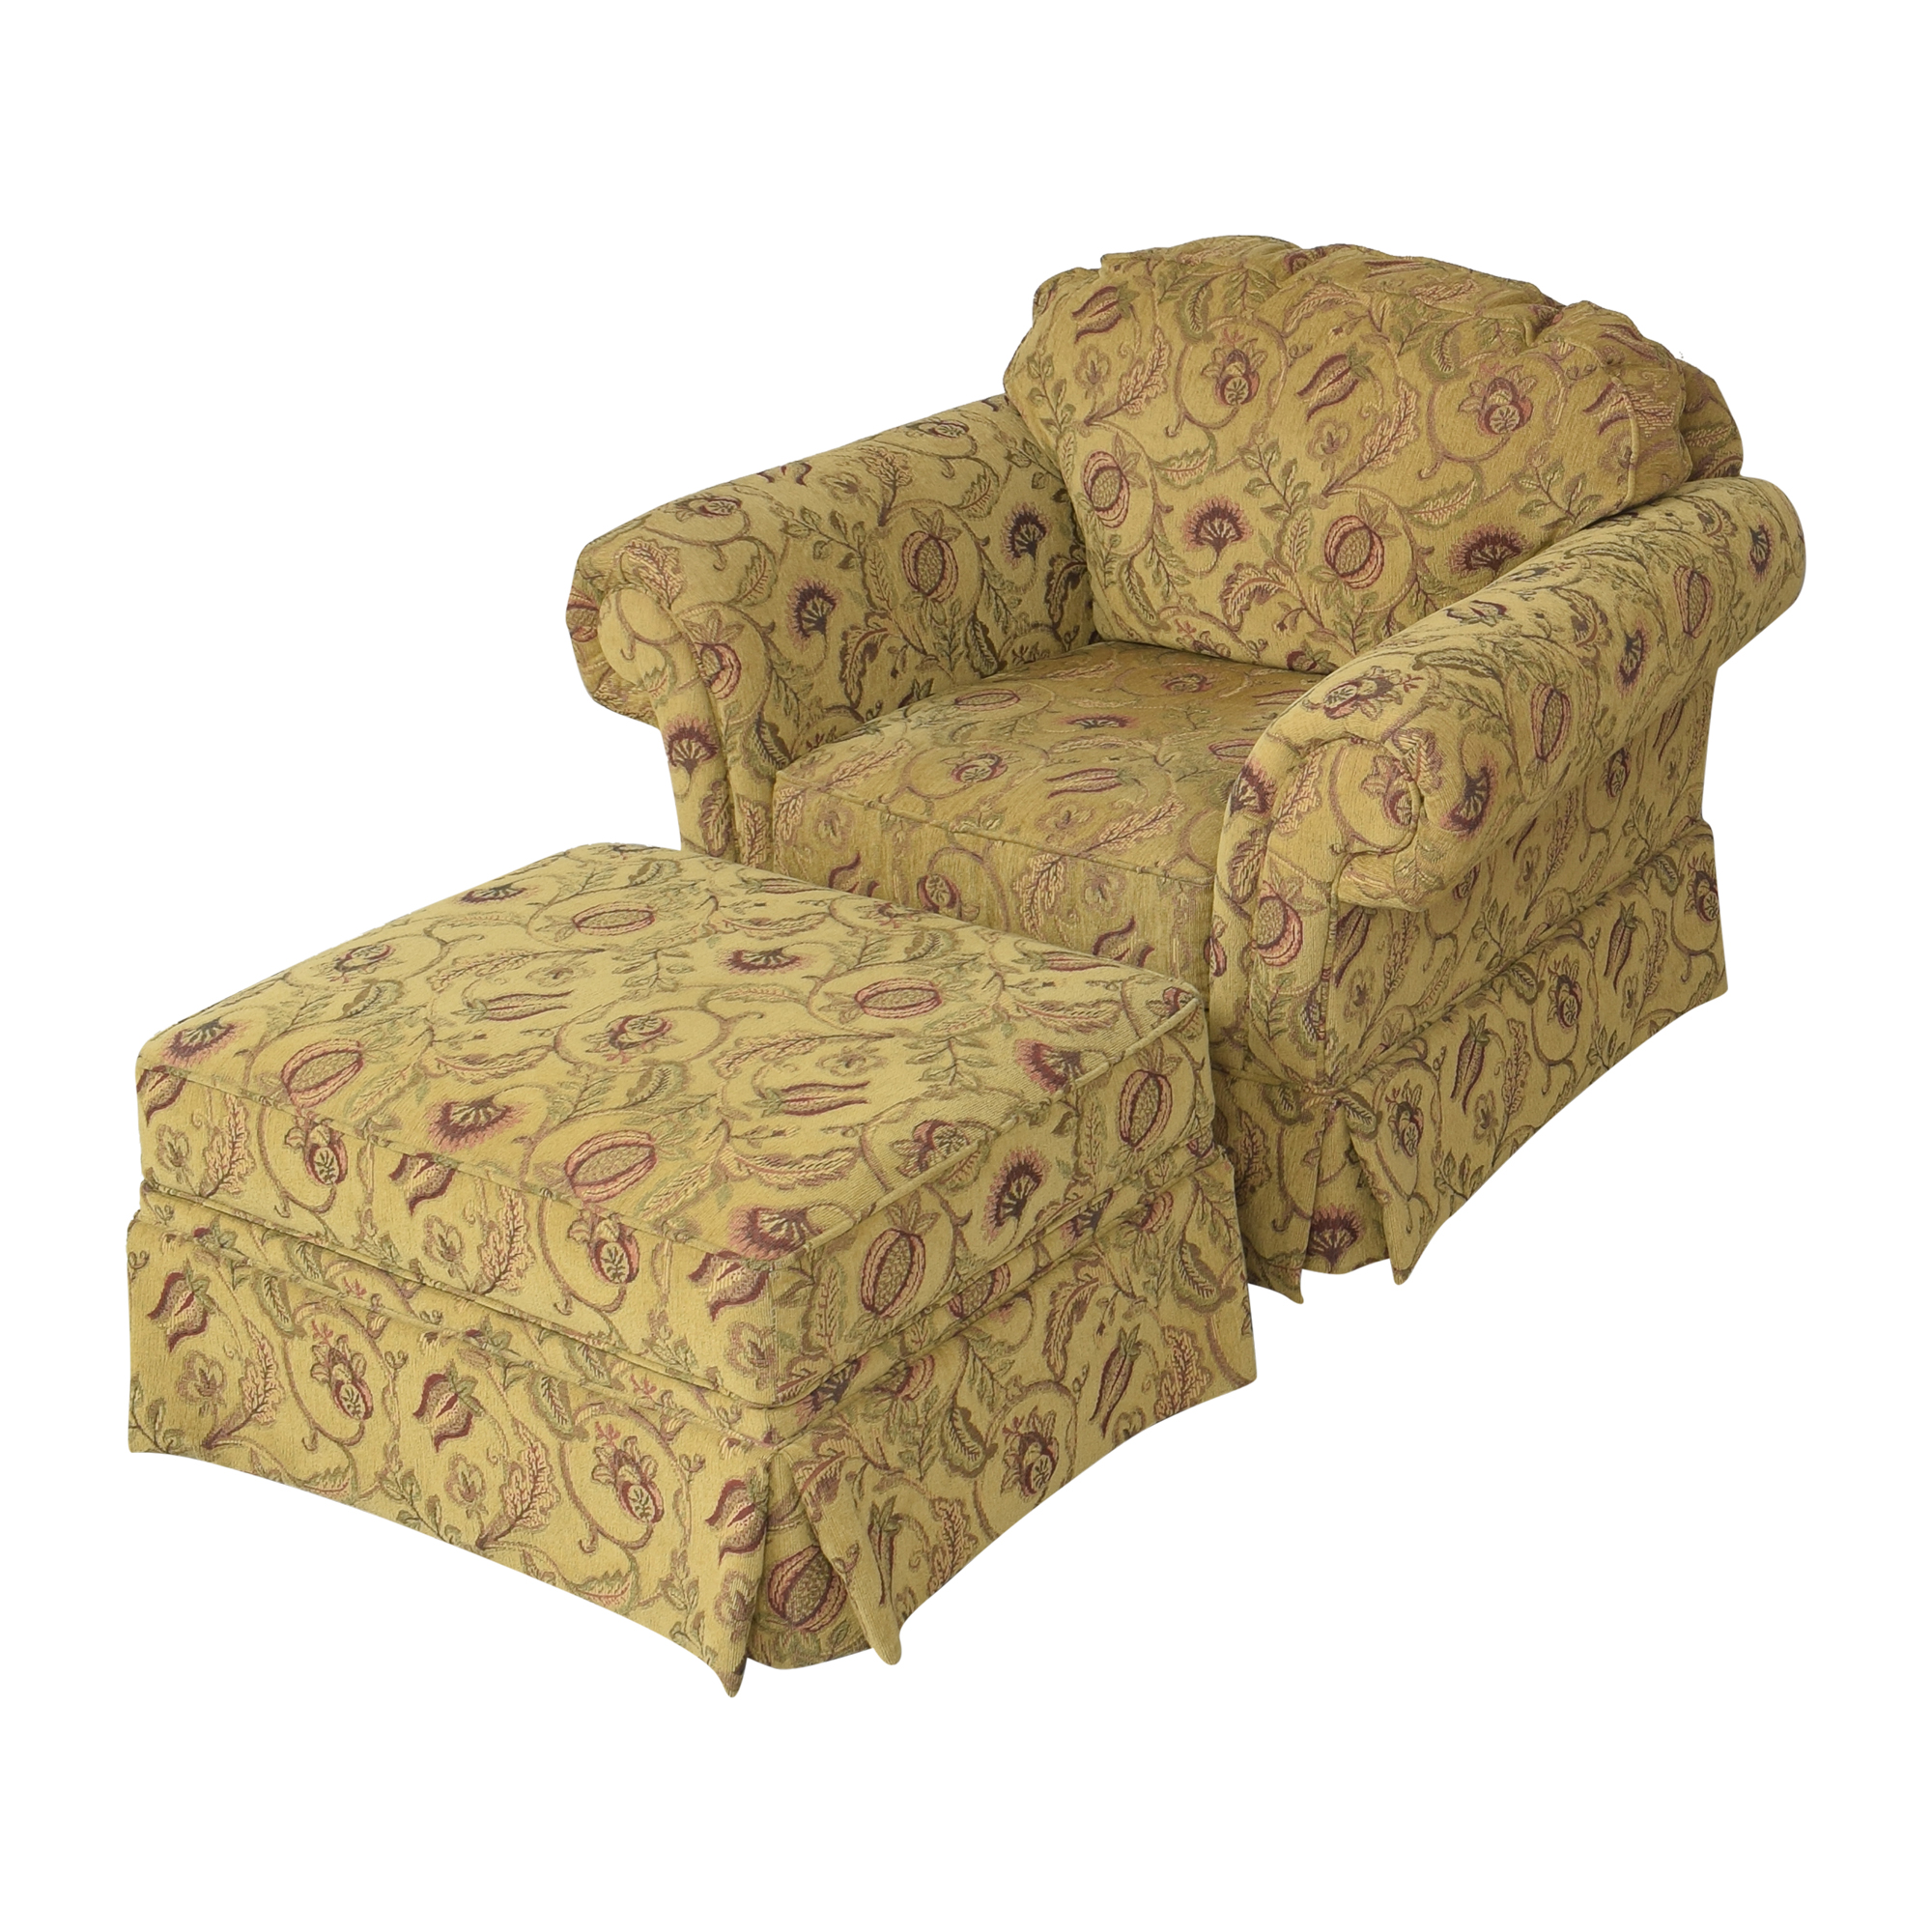 Broyhill Furniture Broyhill Furniture Roll Arm Chair with Ottoman nj